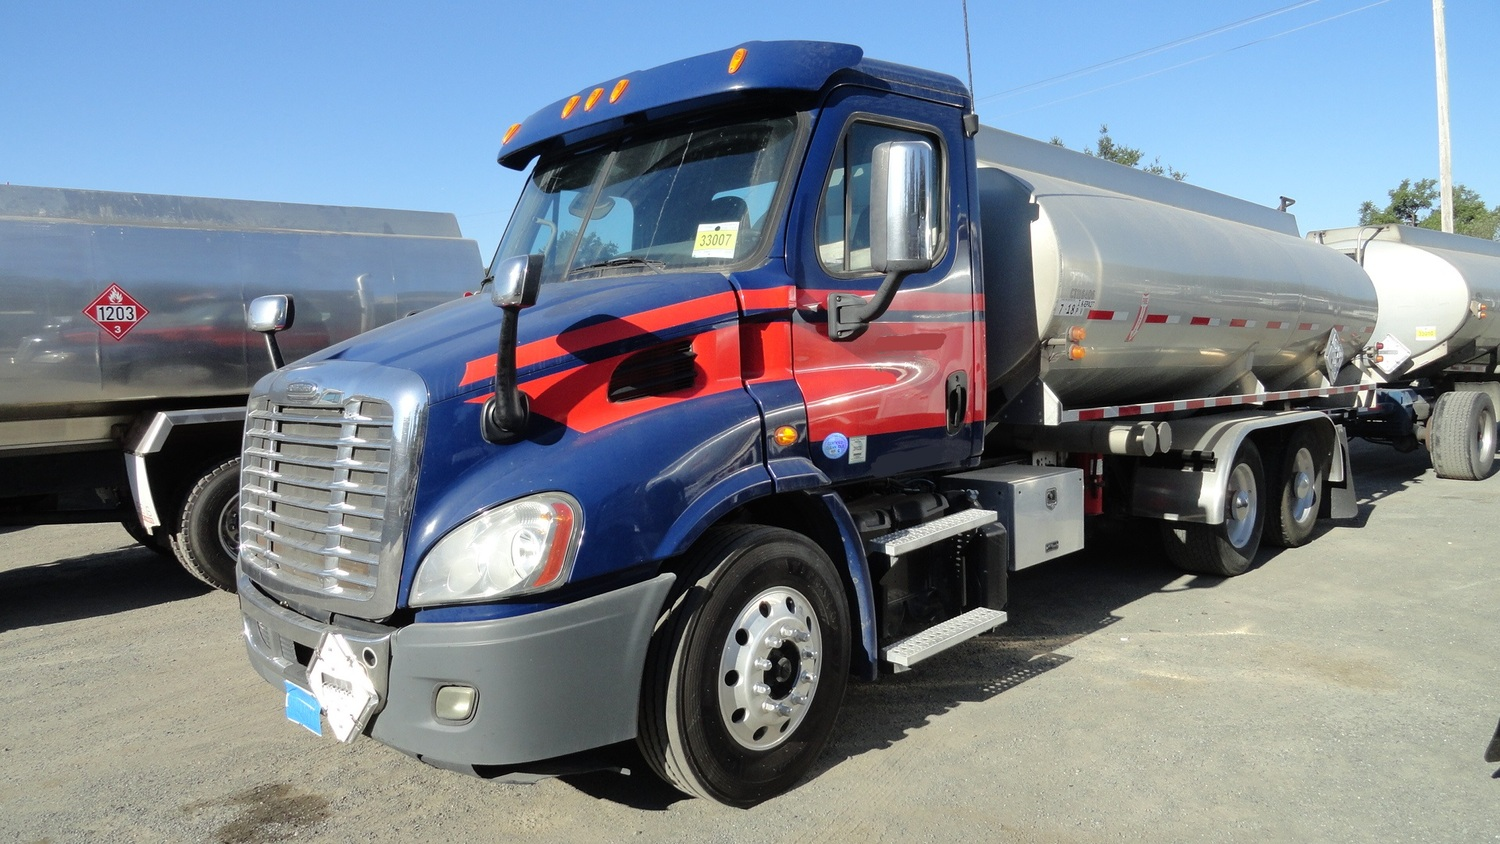 2013 FREIGHTLINER CASCADIA 113 4500 GAL , 1-COMPT  3-AXLE TANK TRUCK